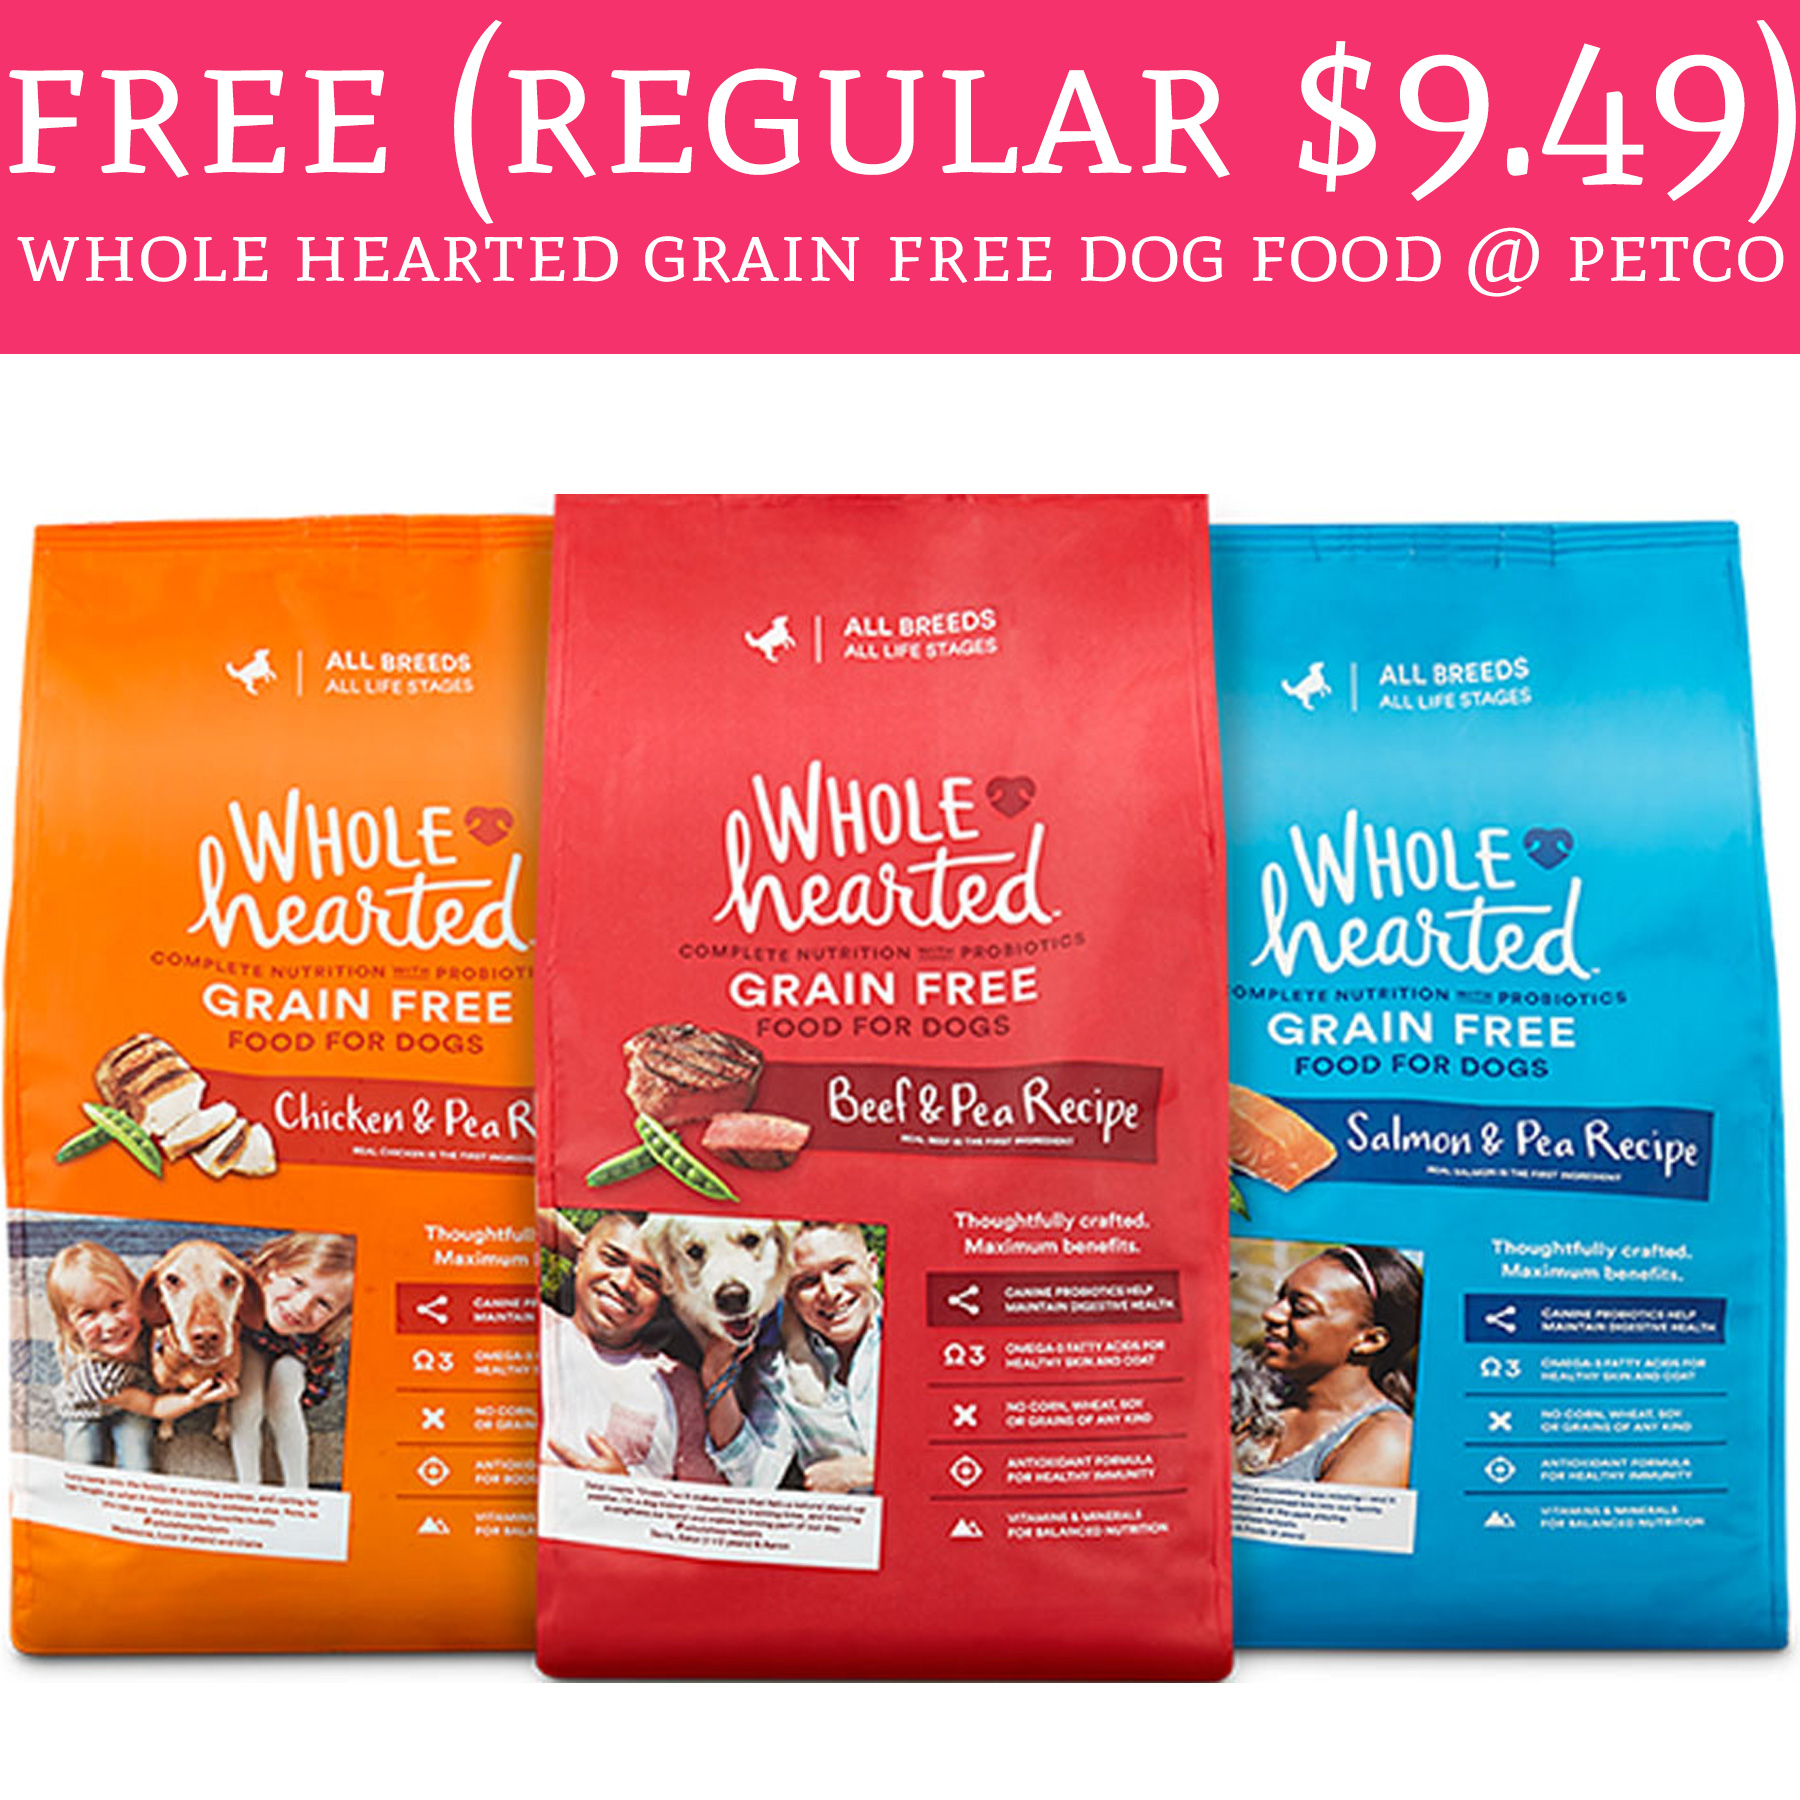 Incredible Who Wants Free Dog Freeeee Whole Hearted Grain Free Dog Food Petco Wholehearted Dog Food Salmon Wholehearted Dog Food Canned bark post Wholehearted Dog Food